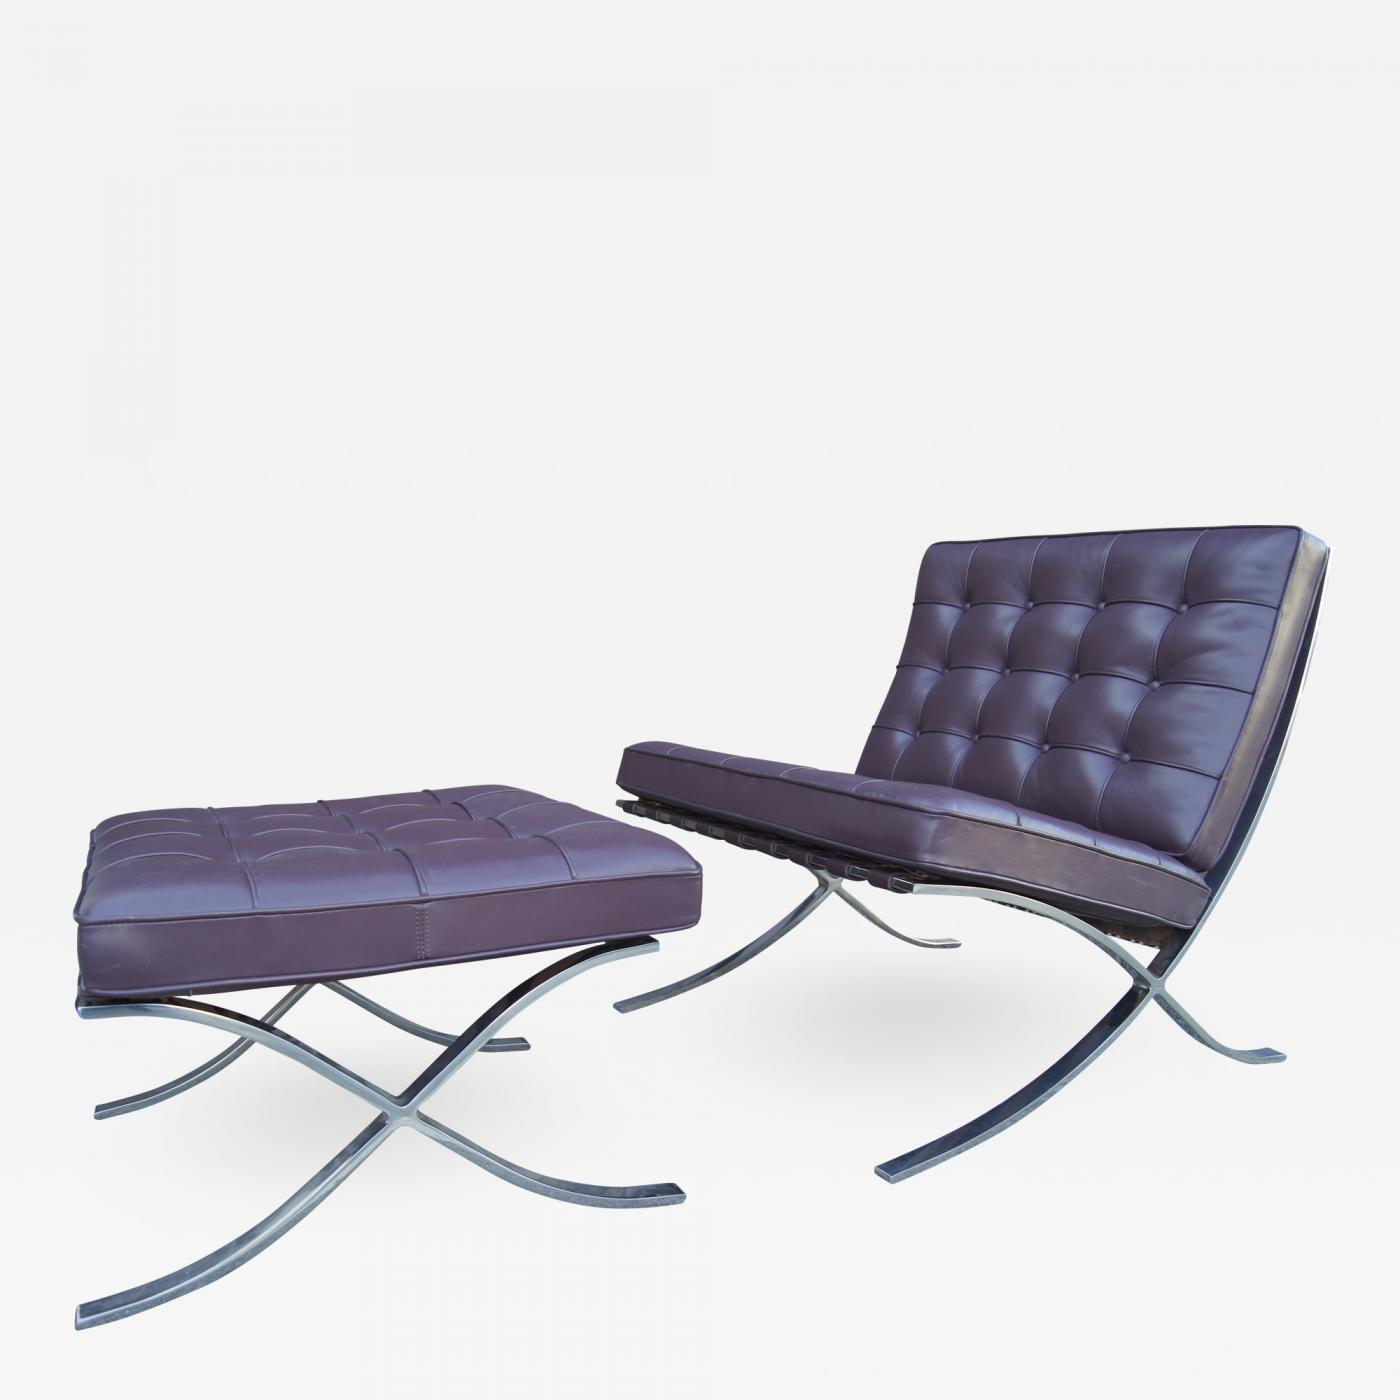 Ludwig Mies Van Der Rohe Eggplant Leather Barcelona Chair And Ottoman By Mies Van Der Rohe For Knoll